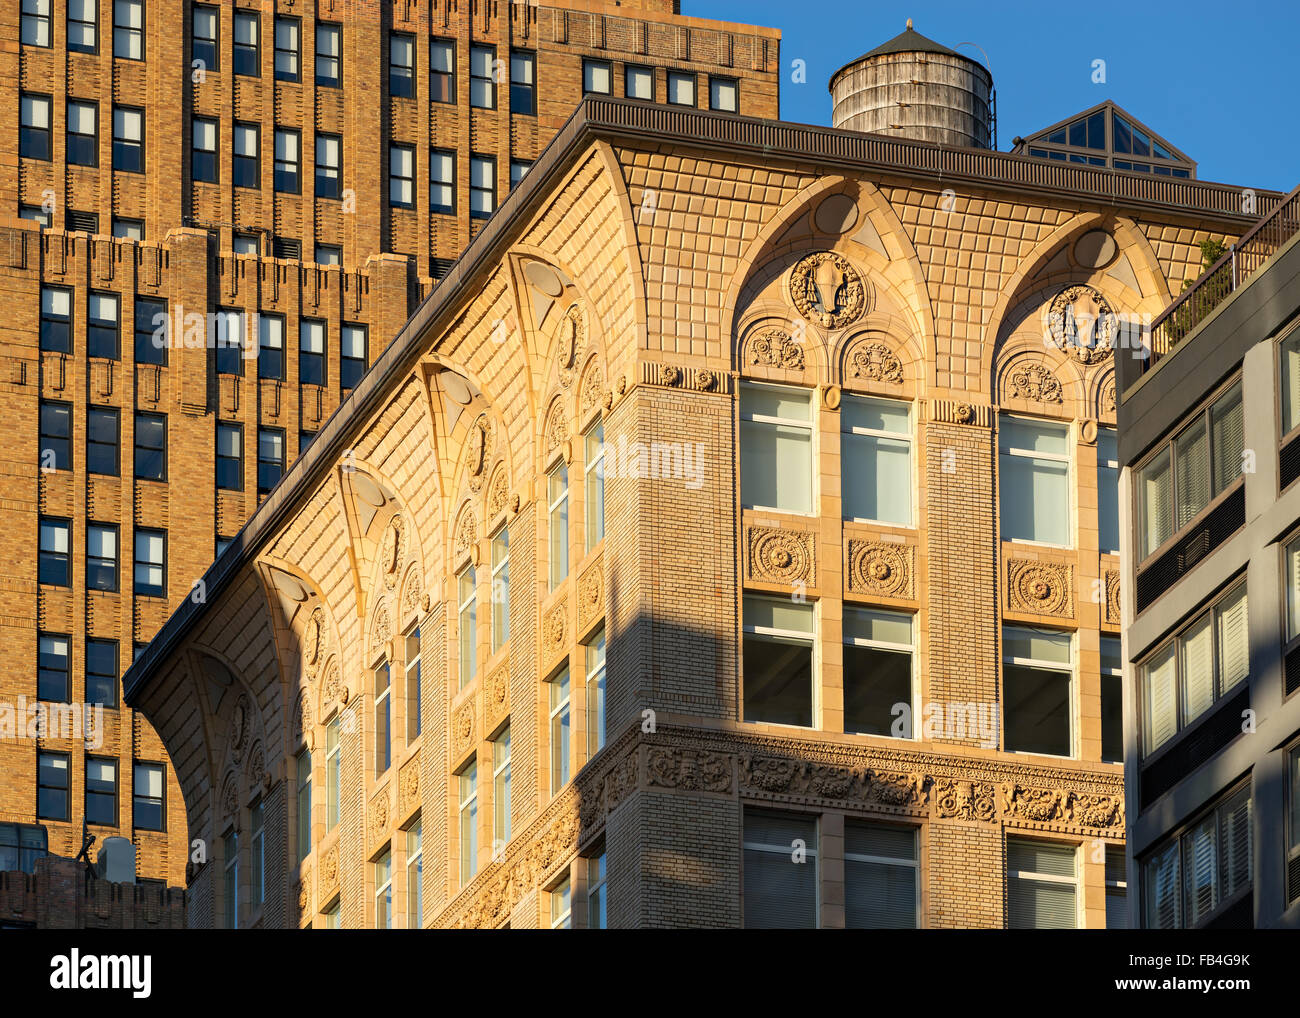 Terracotta ornament, rams heads, garland and gothic arches ofna Chelsea loft building in Manhattan, New York City. Stock Photo